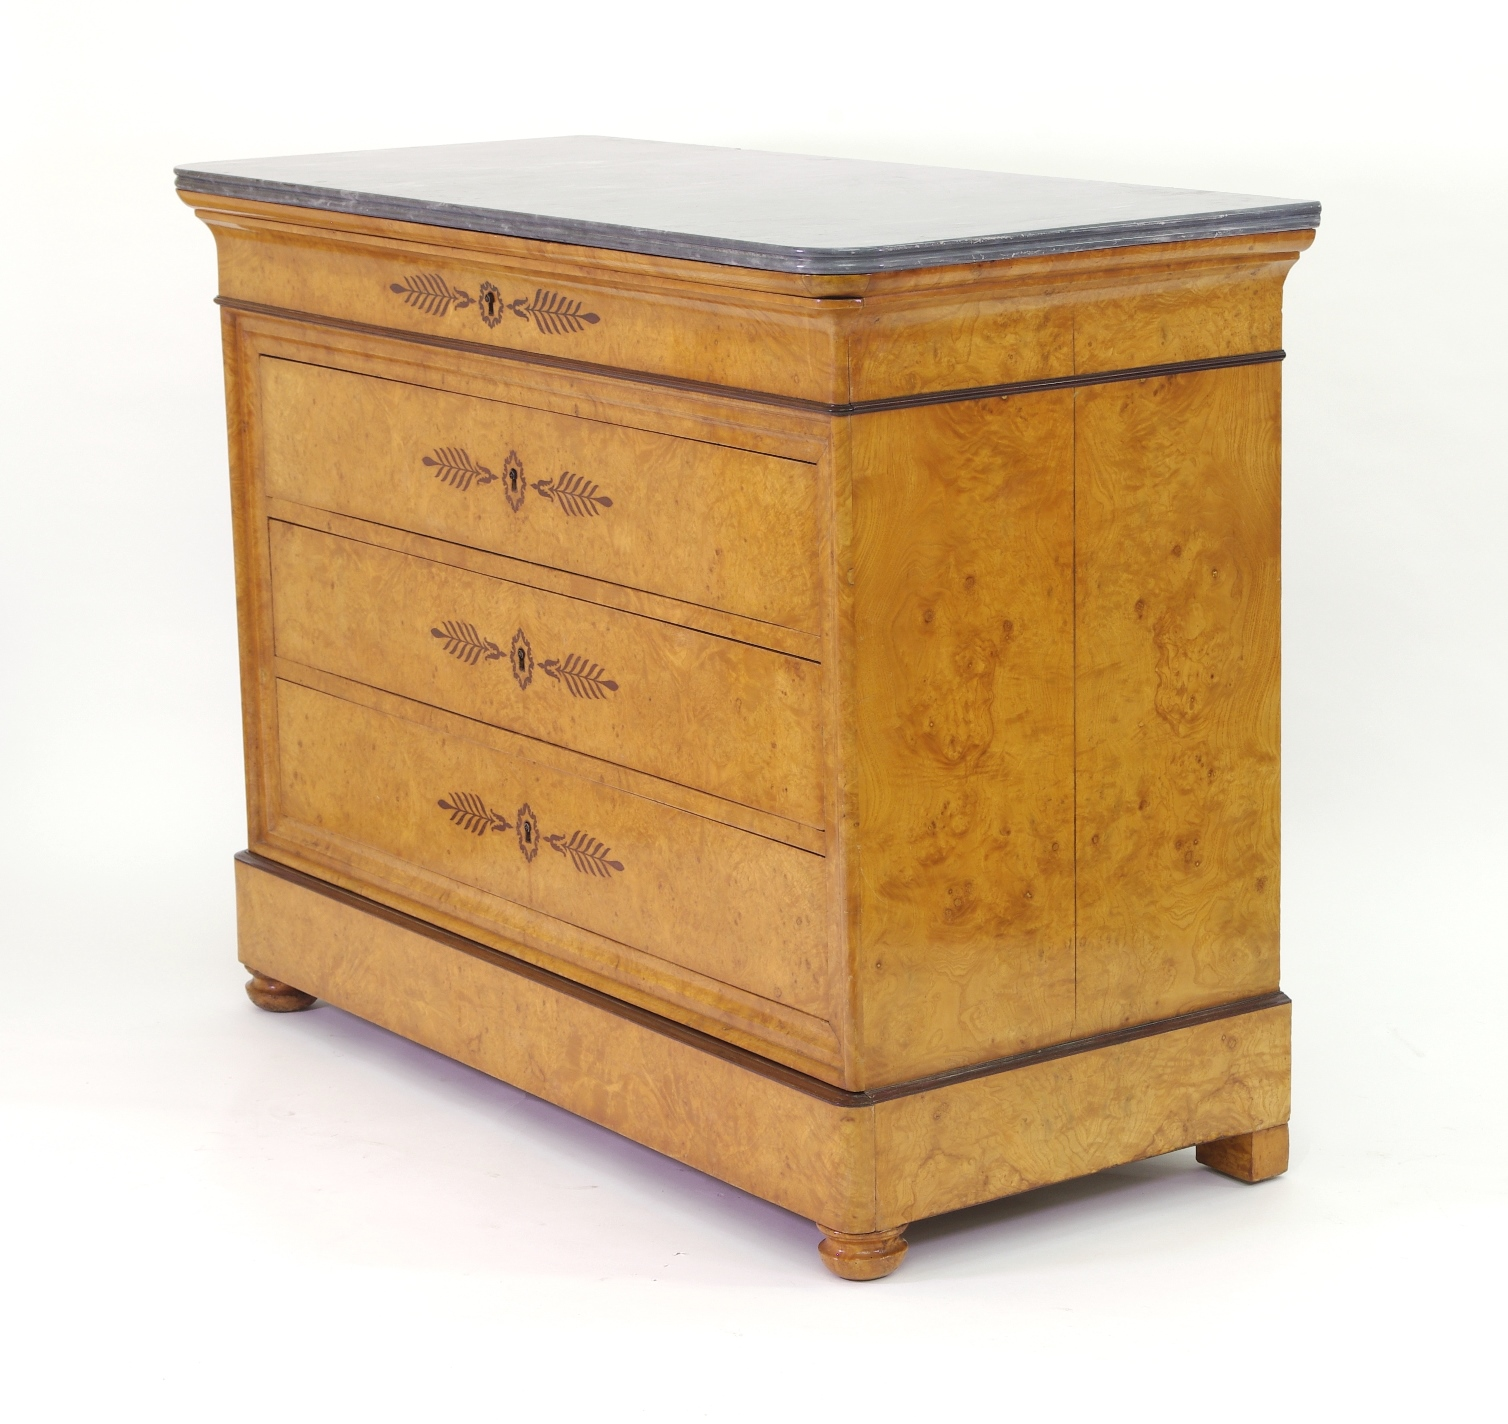 View 3: French Restauration Burr Ash Chest of Drawers, c. 1825